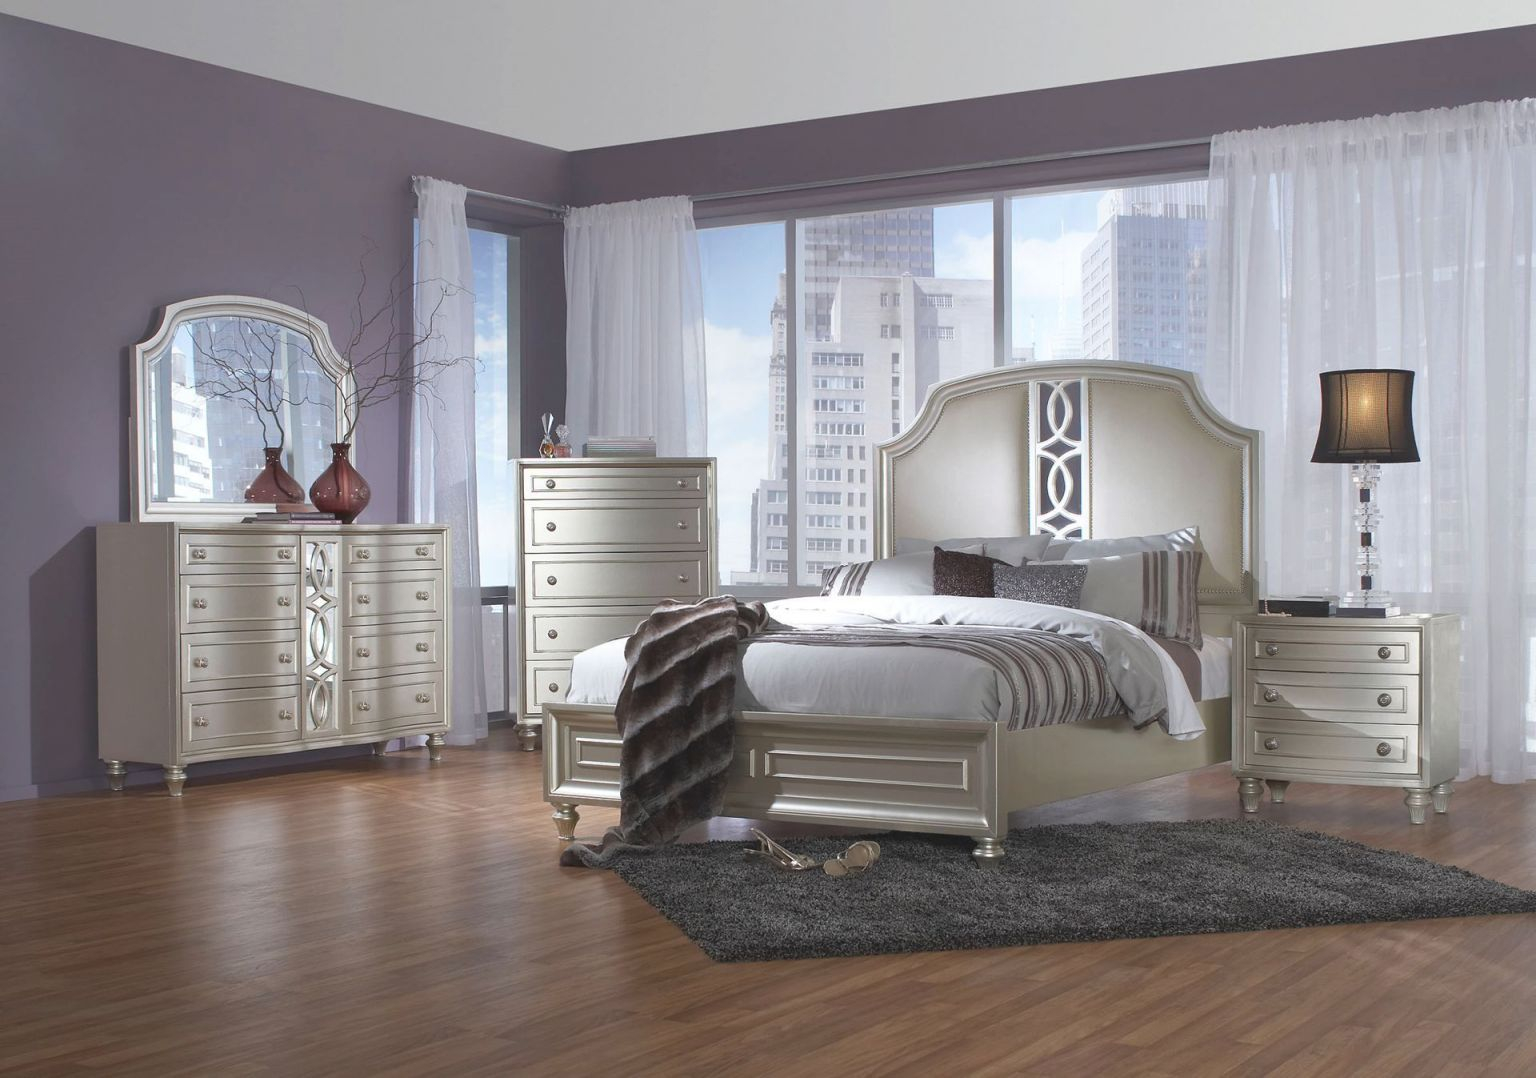 Christian Queen Bedroom Set in Bedroom Set Queen Size